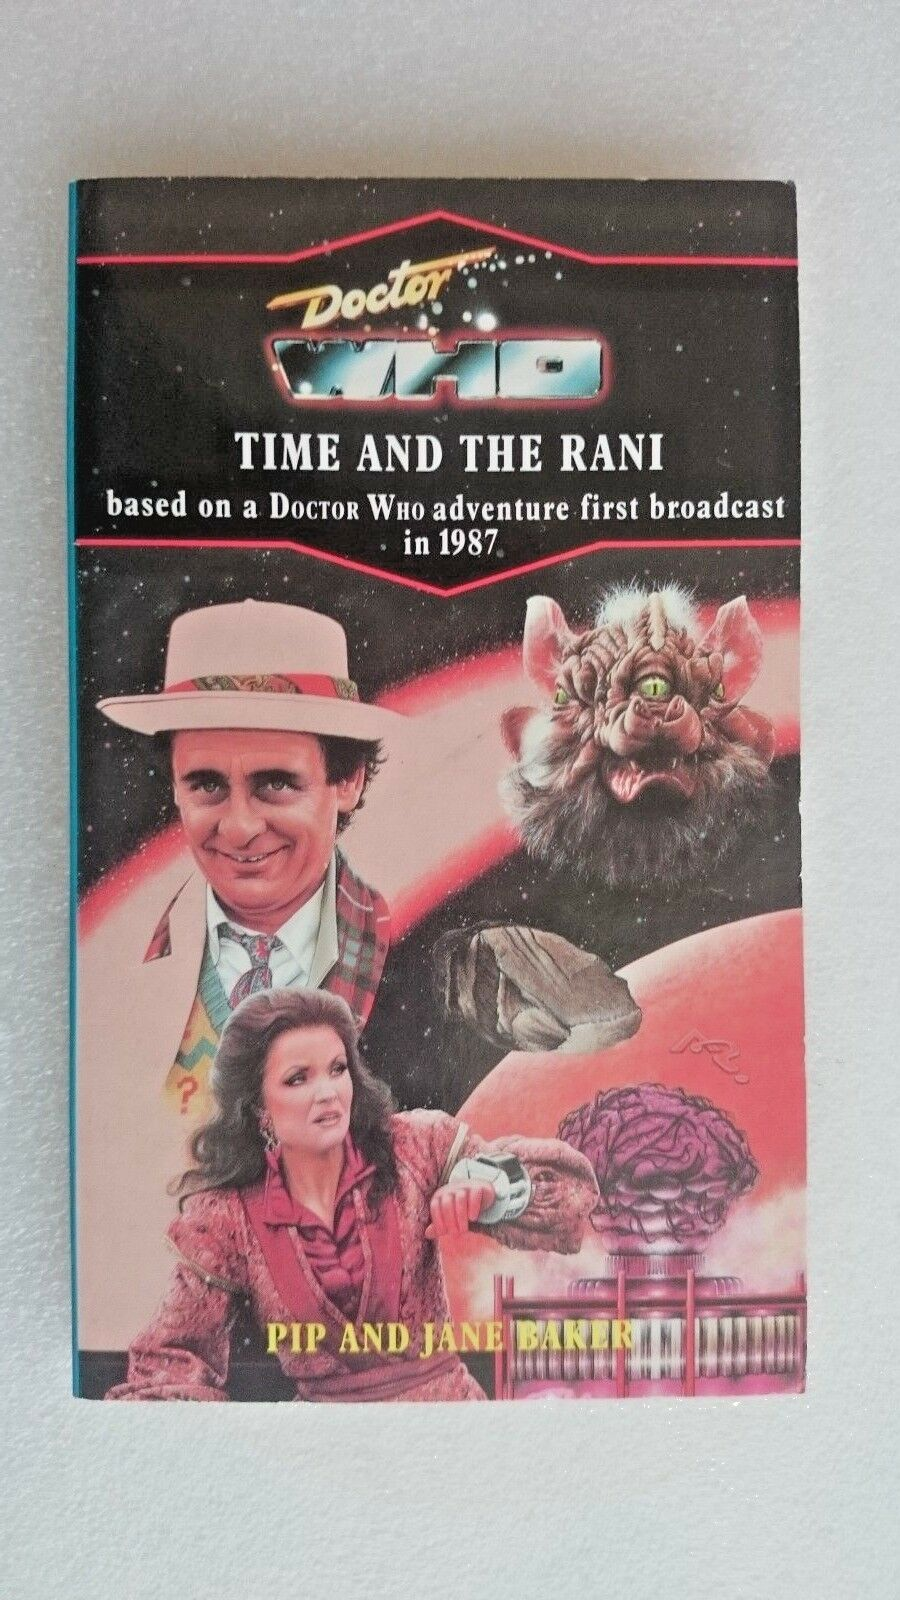 Doctor Who-Time and the Rani by Pip Baker, Jane Baker (Paperback, 1991)